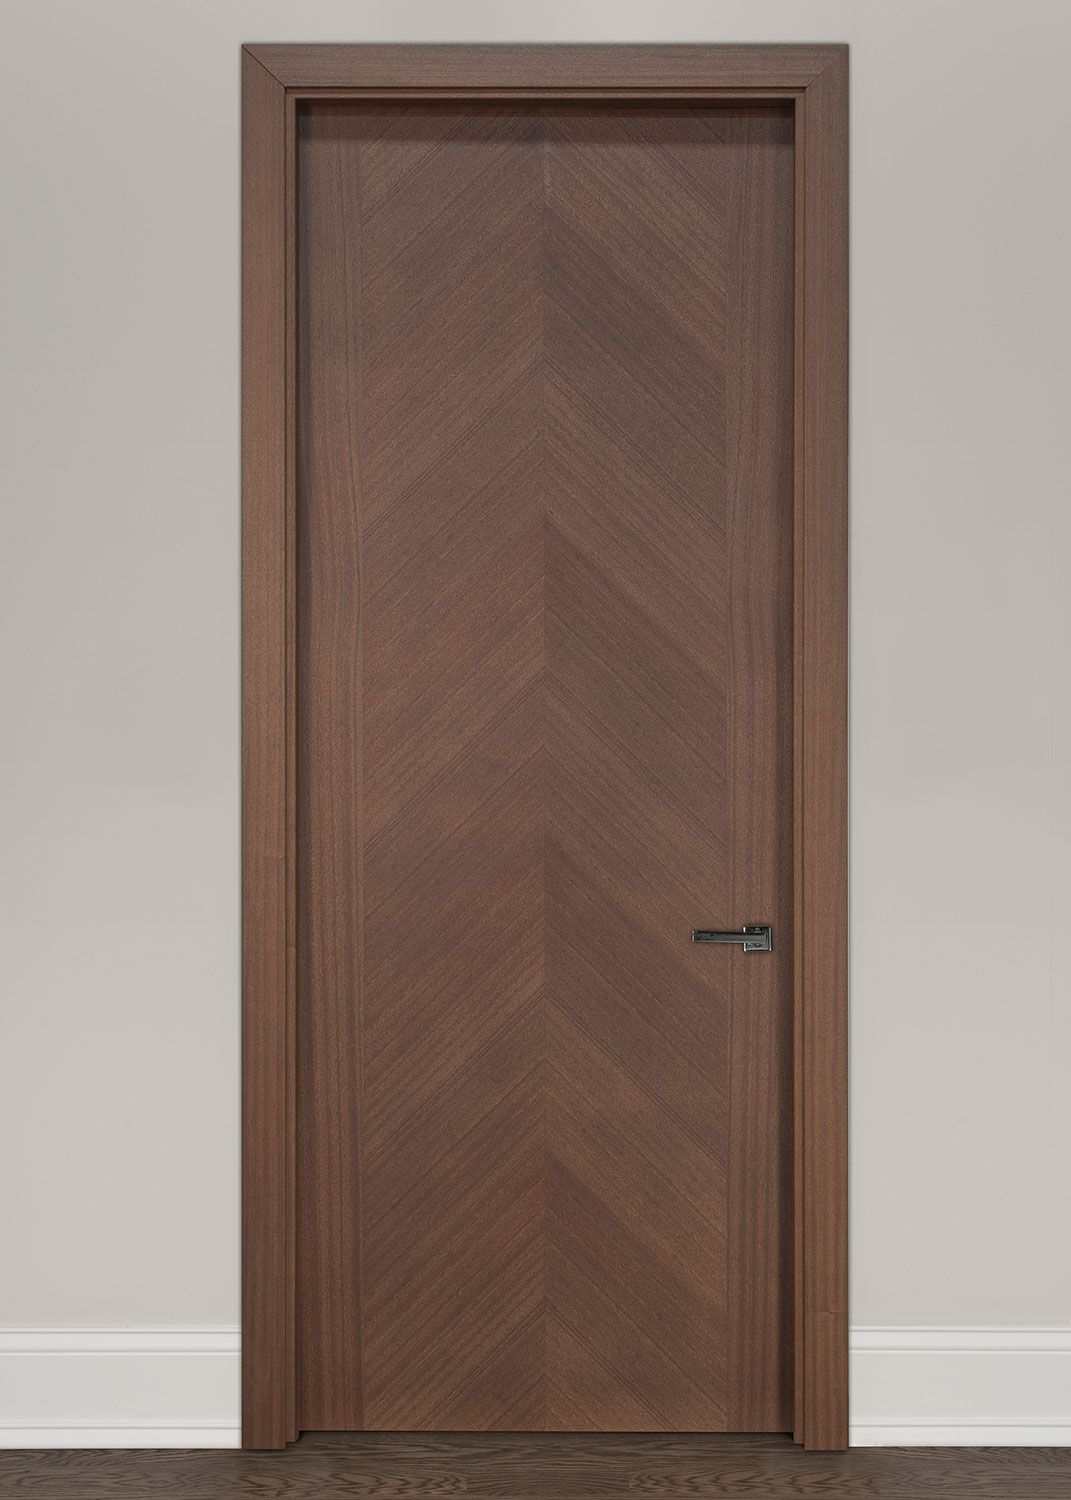 Modern Interior Doors Gdim Fl2050 In 2020 Doors Interior Modern Doors Interior Door Design Interior